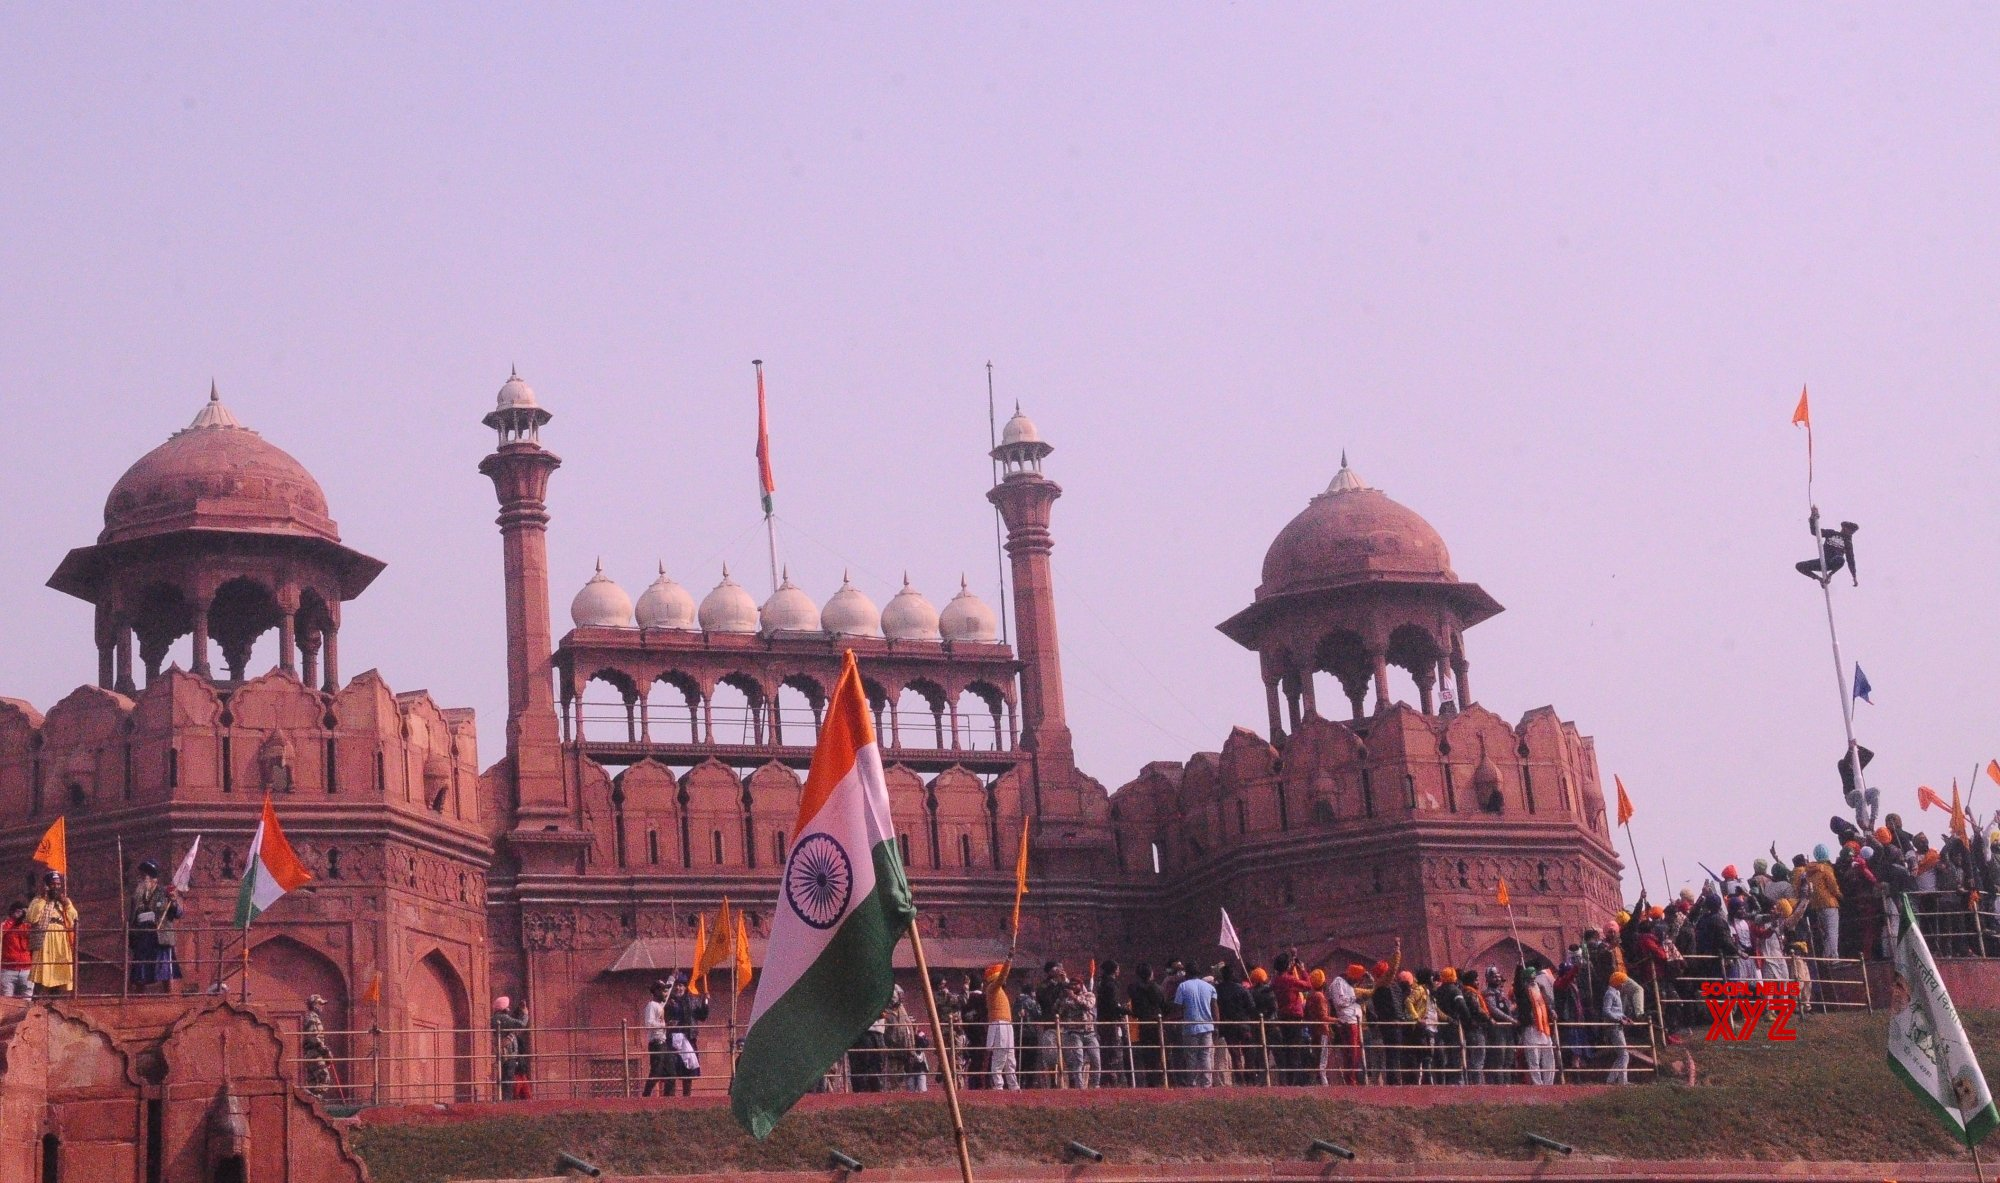 Man who climbed the ramparts of Red fort arrested